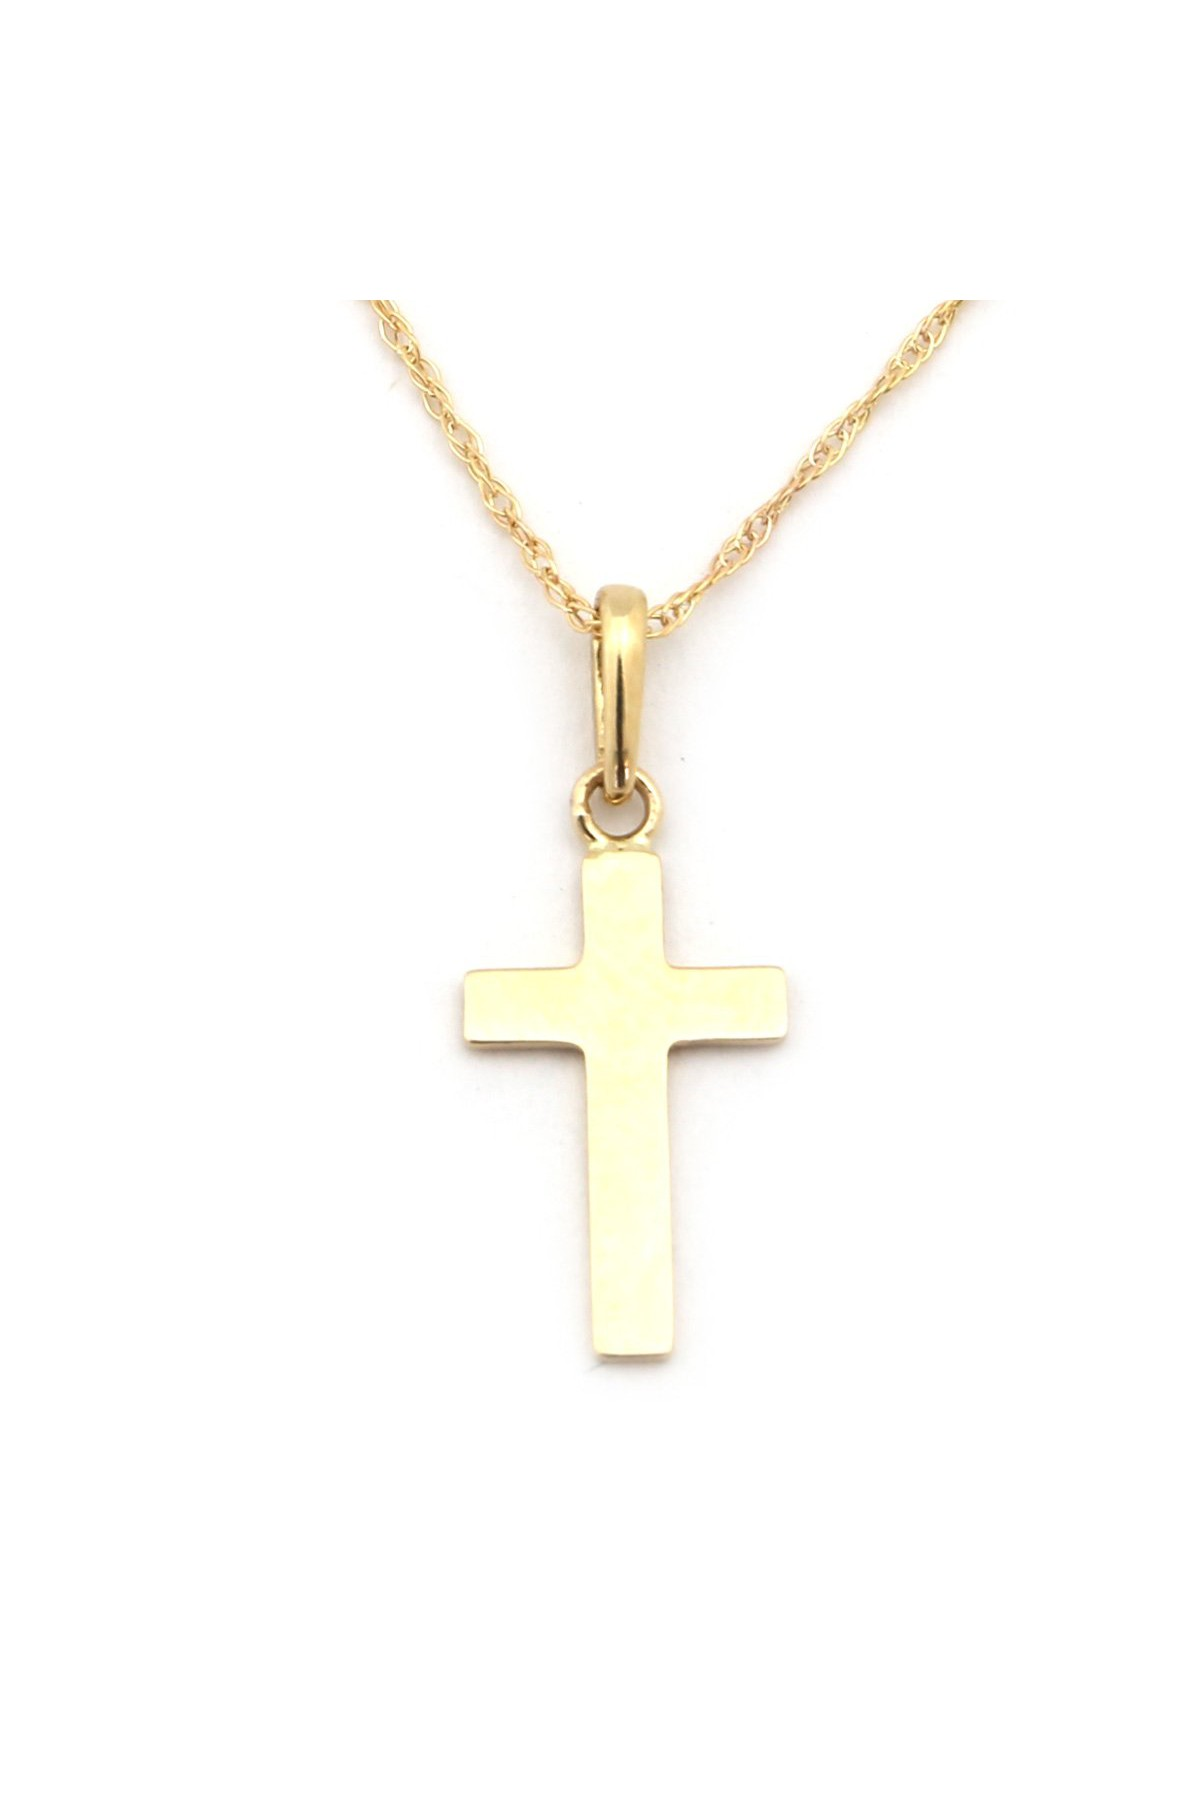 14k Yellow Gold Polished Small Toy Train Pendant